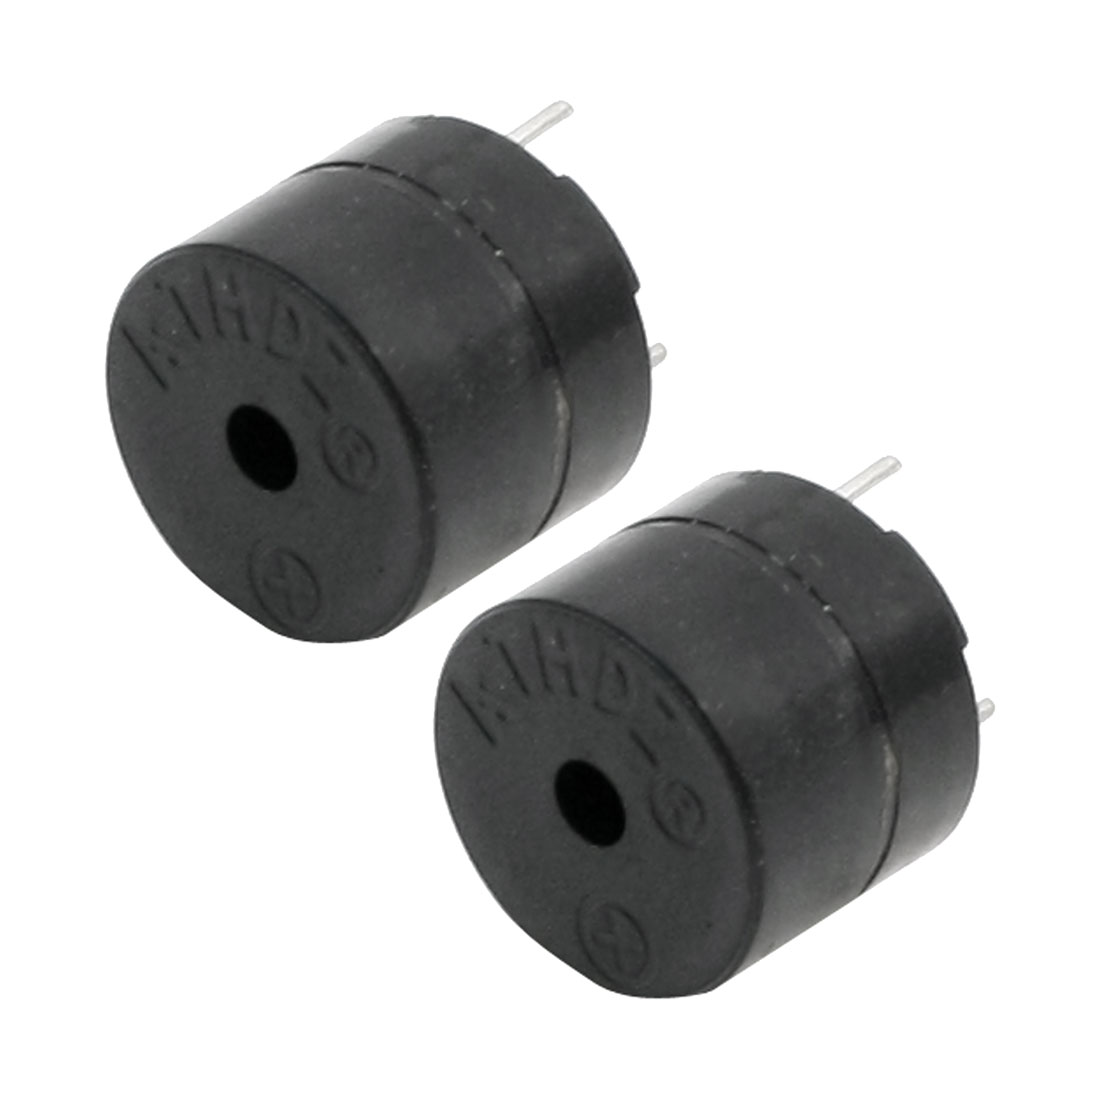 DC 5V 85dB Industrial Black Active Electronic Buzzer 2pcs